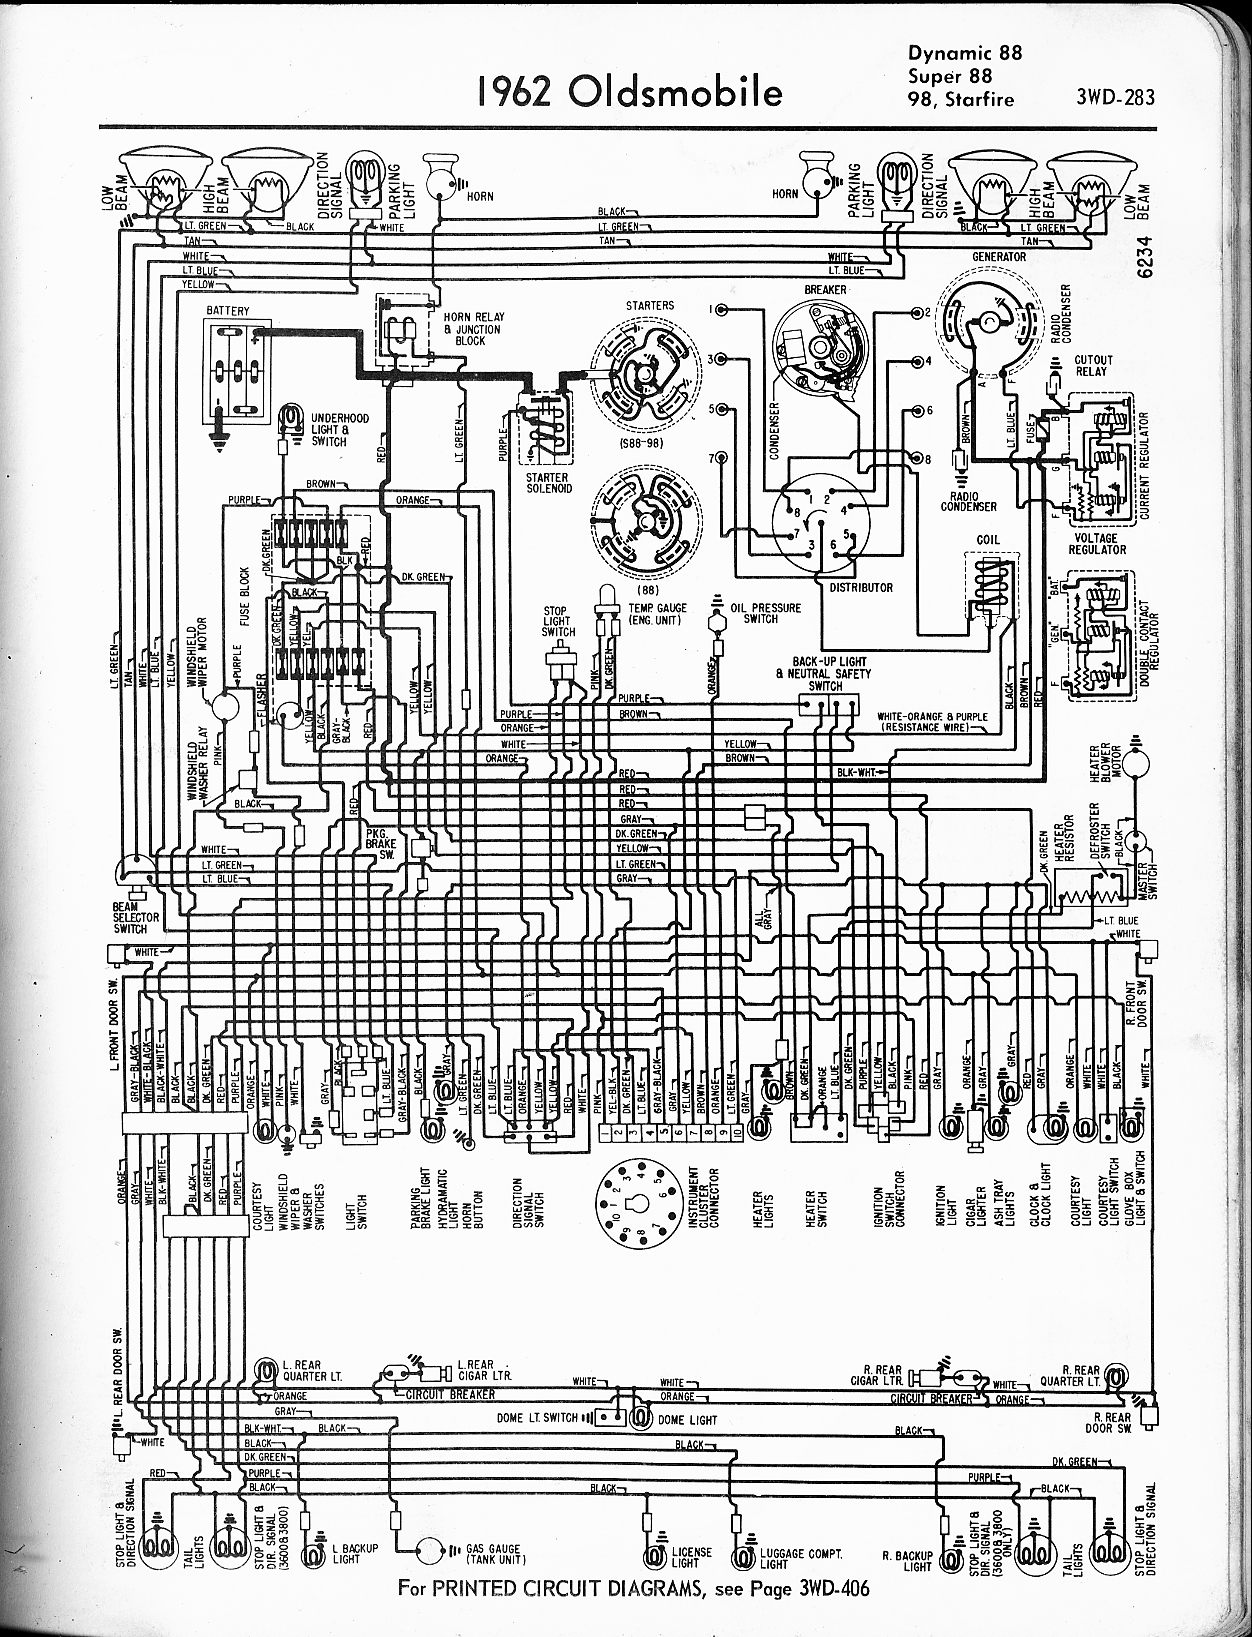 1982 Oldsmobile Toronado Engine Diagram Archive Of Automotive Guitarheads Wiring Diagrams The Old Car Manual Project Rh Oldcarmanualproject Com